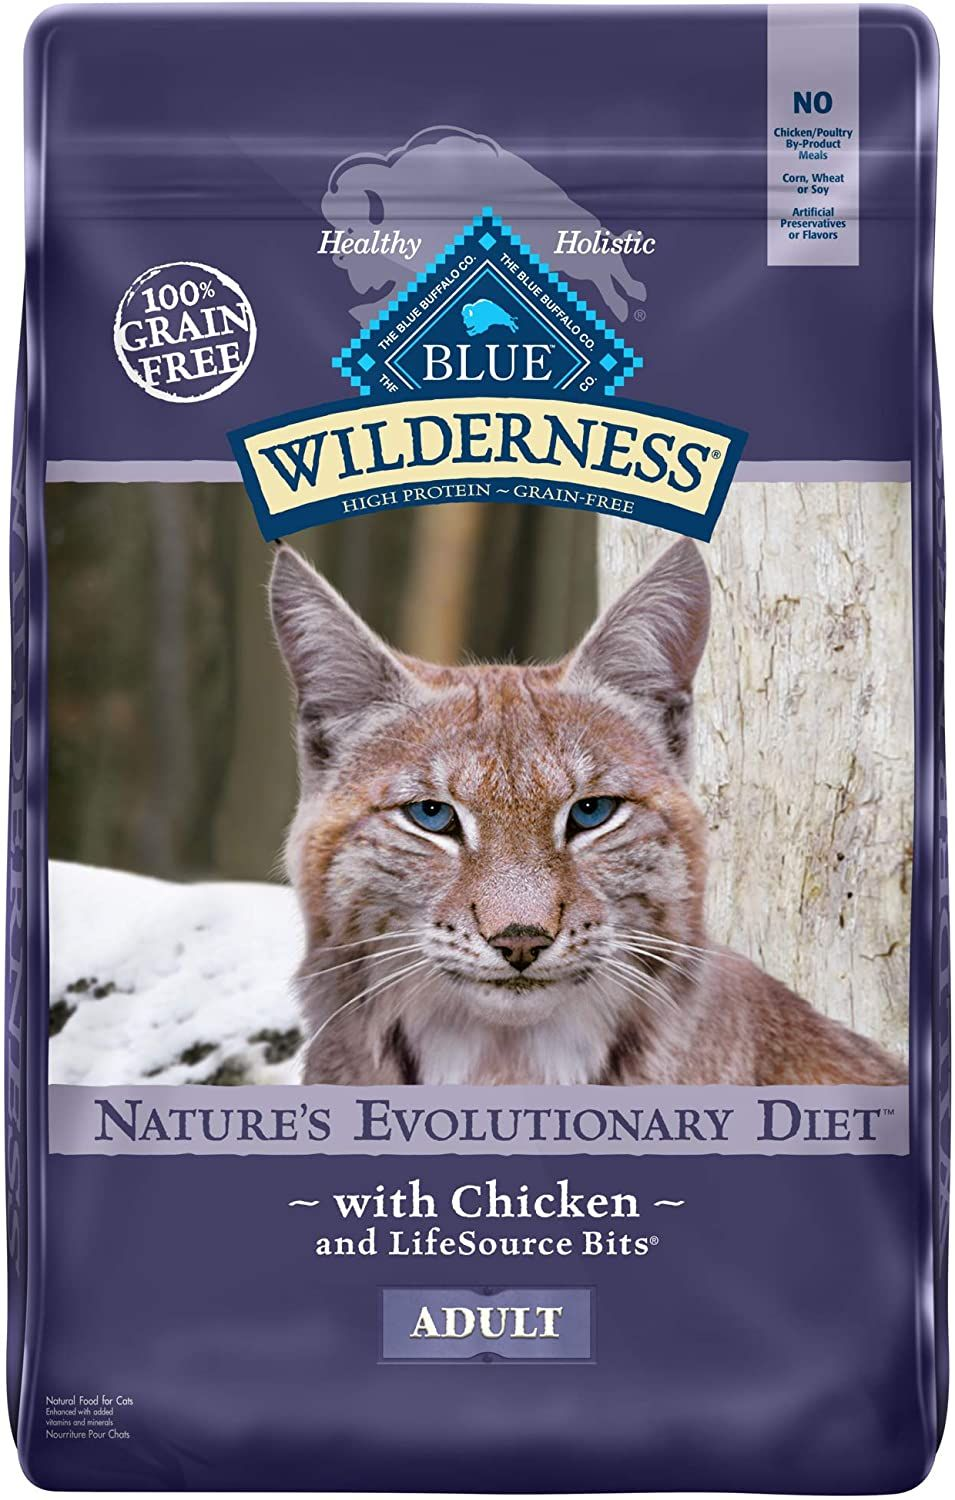 Blue Buffalo Wilderness High Protein Dry Adult Cat Food In 2020 Cat Food Brands Best Cat Food Dry Cat Food